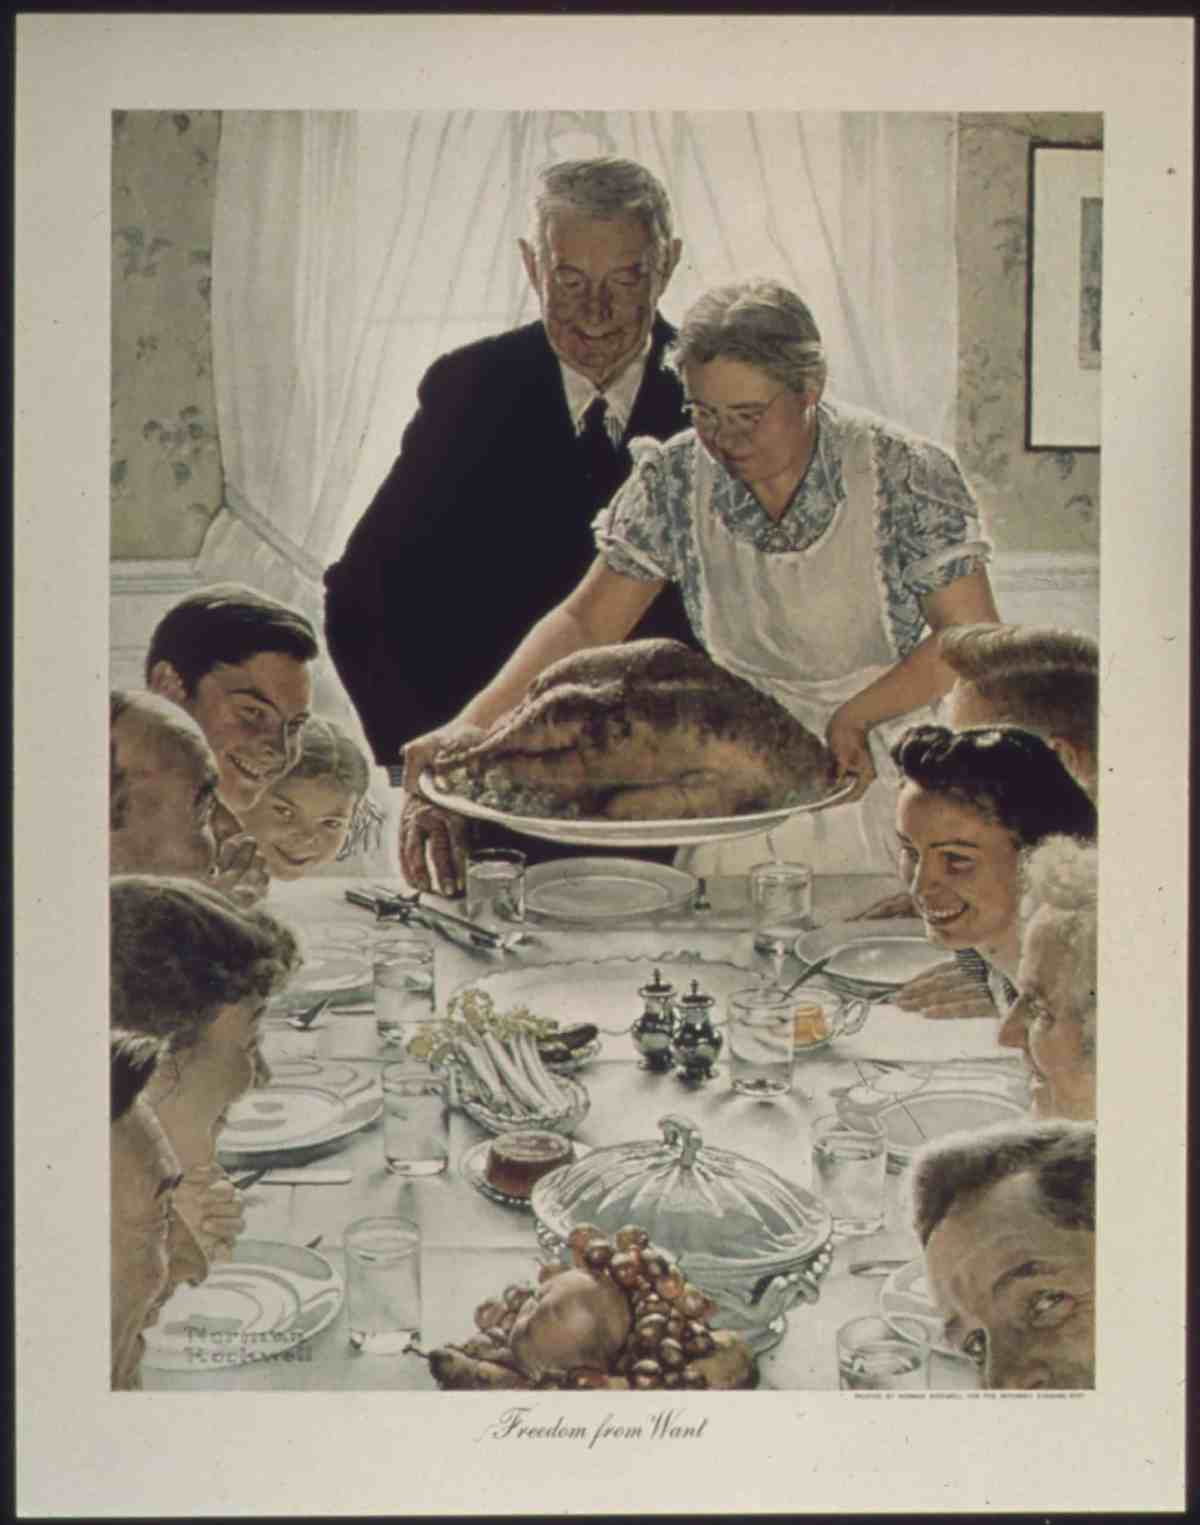 A large family gathered at a table for a holiday meal as the turkey arrives at the table in this classic painting